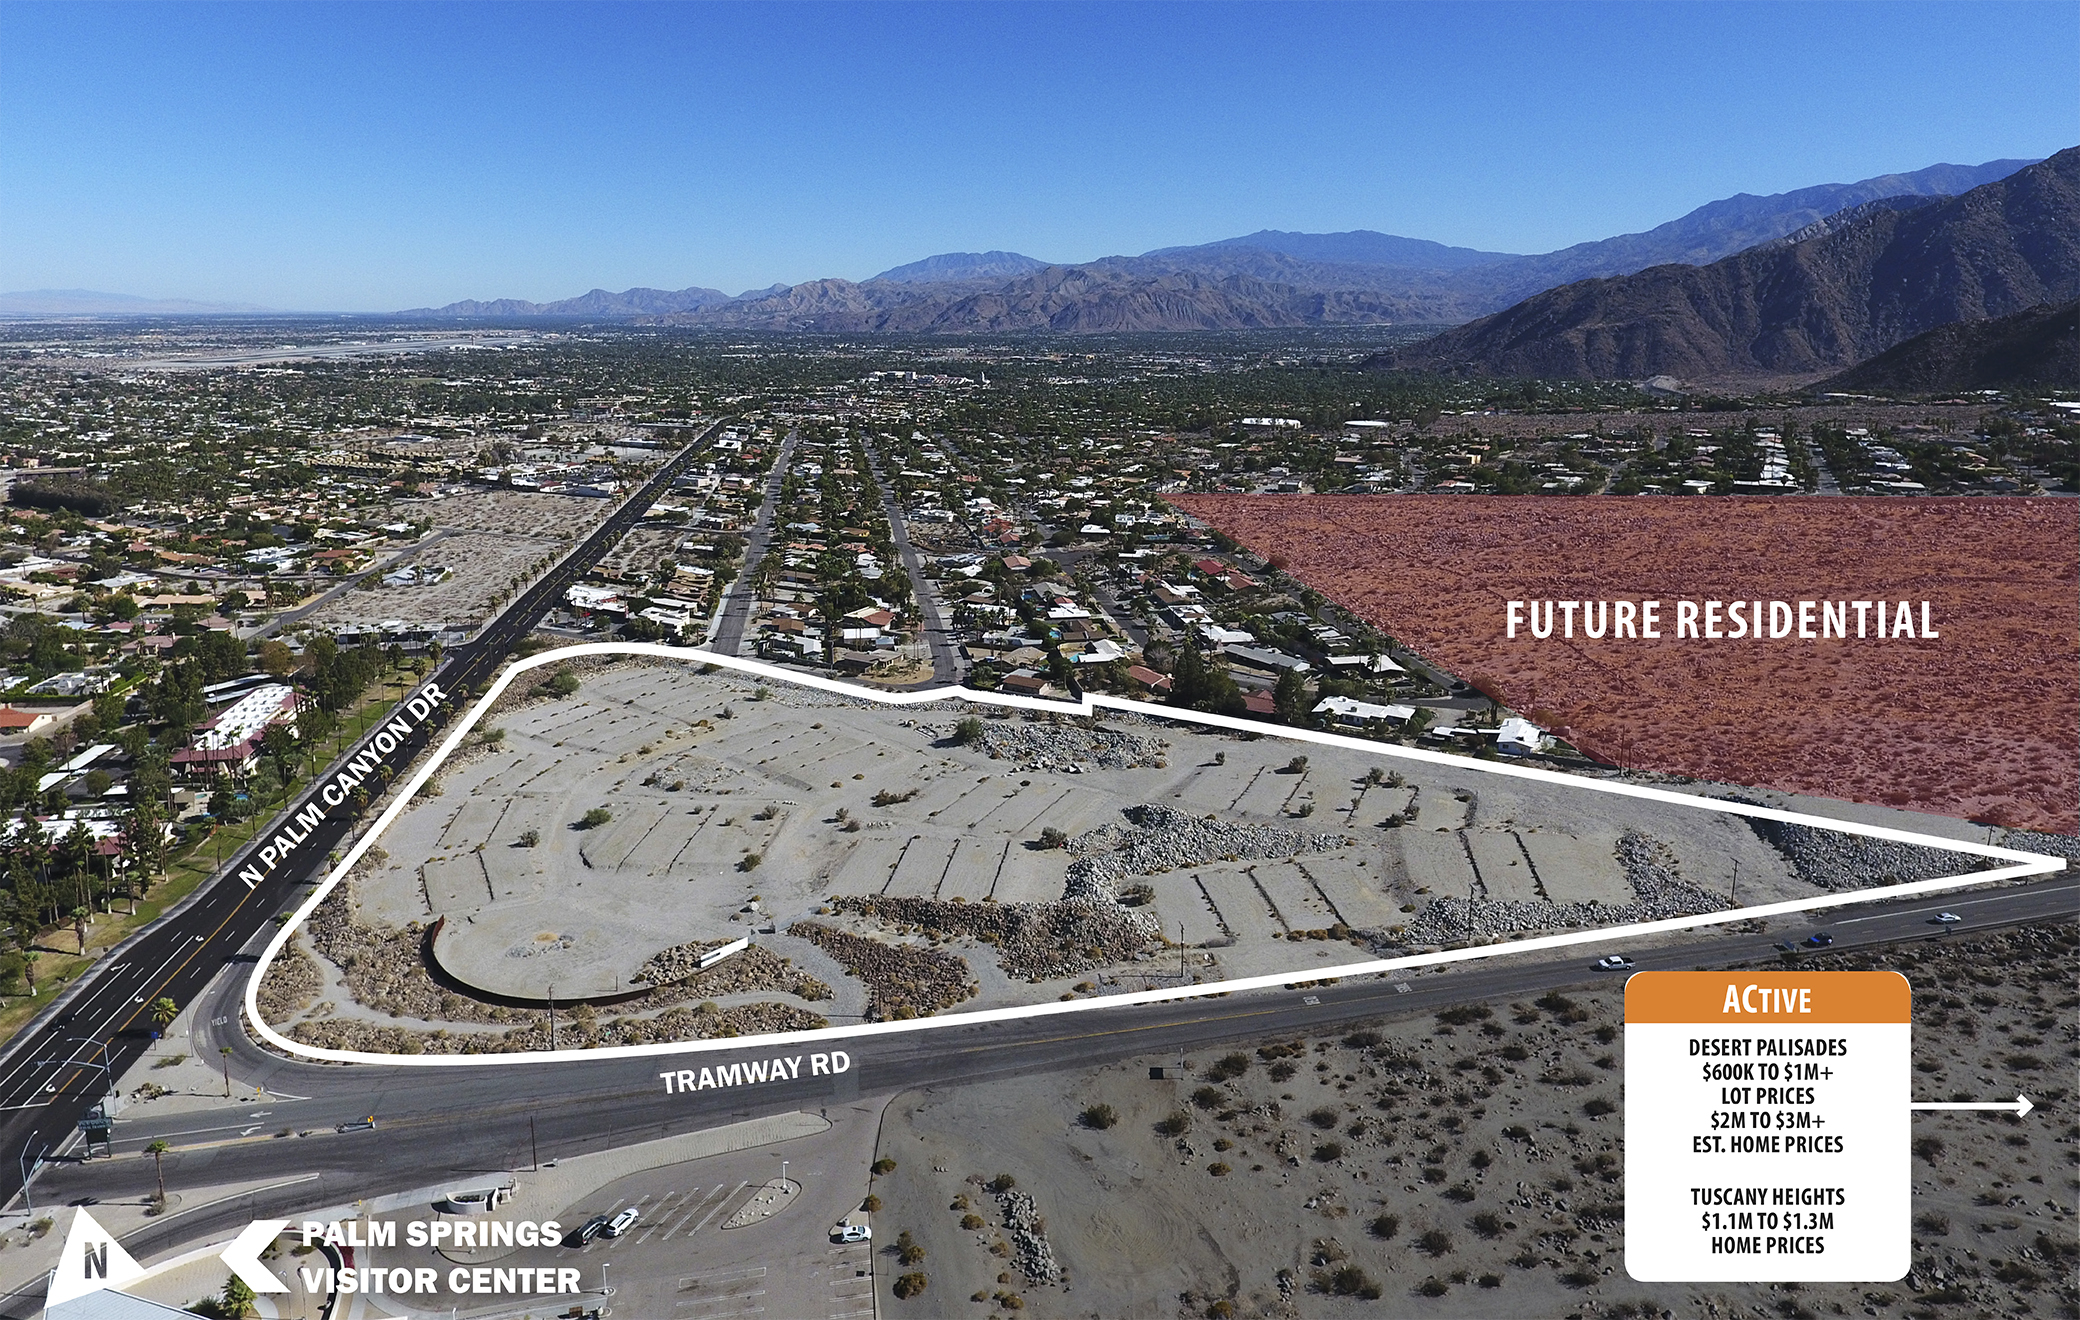 PEDREGAL | 132 Improved & Final Recorded Map Units | Palm Spring, CA on